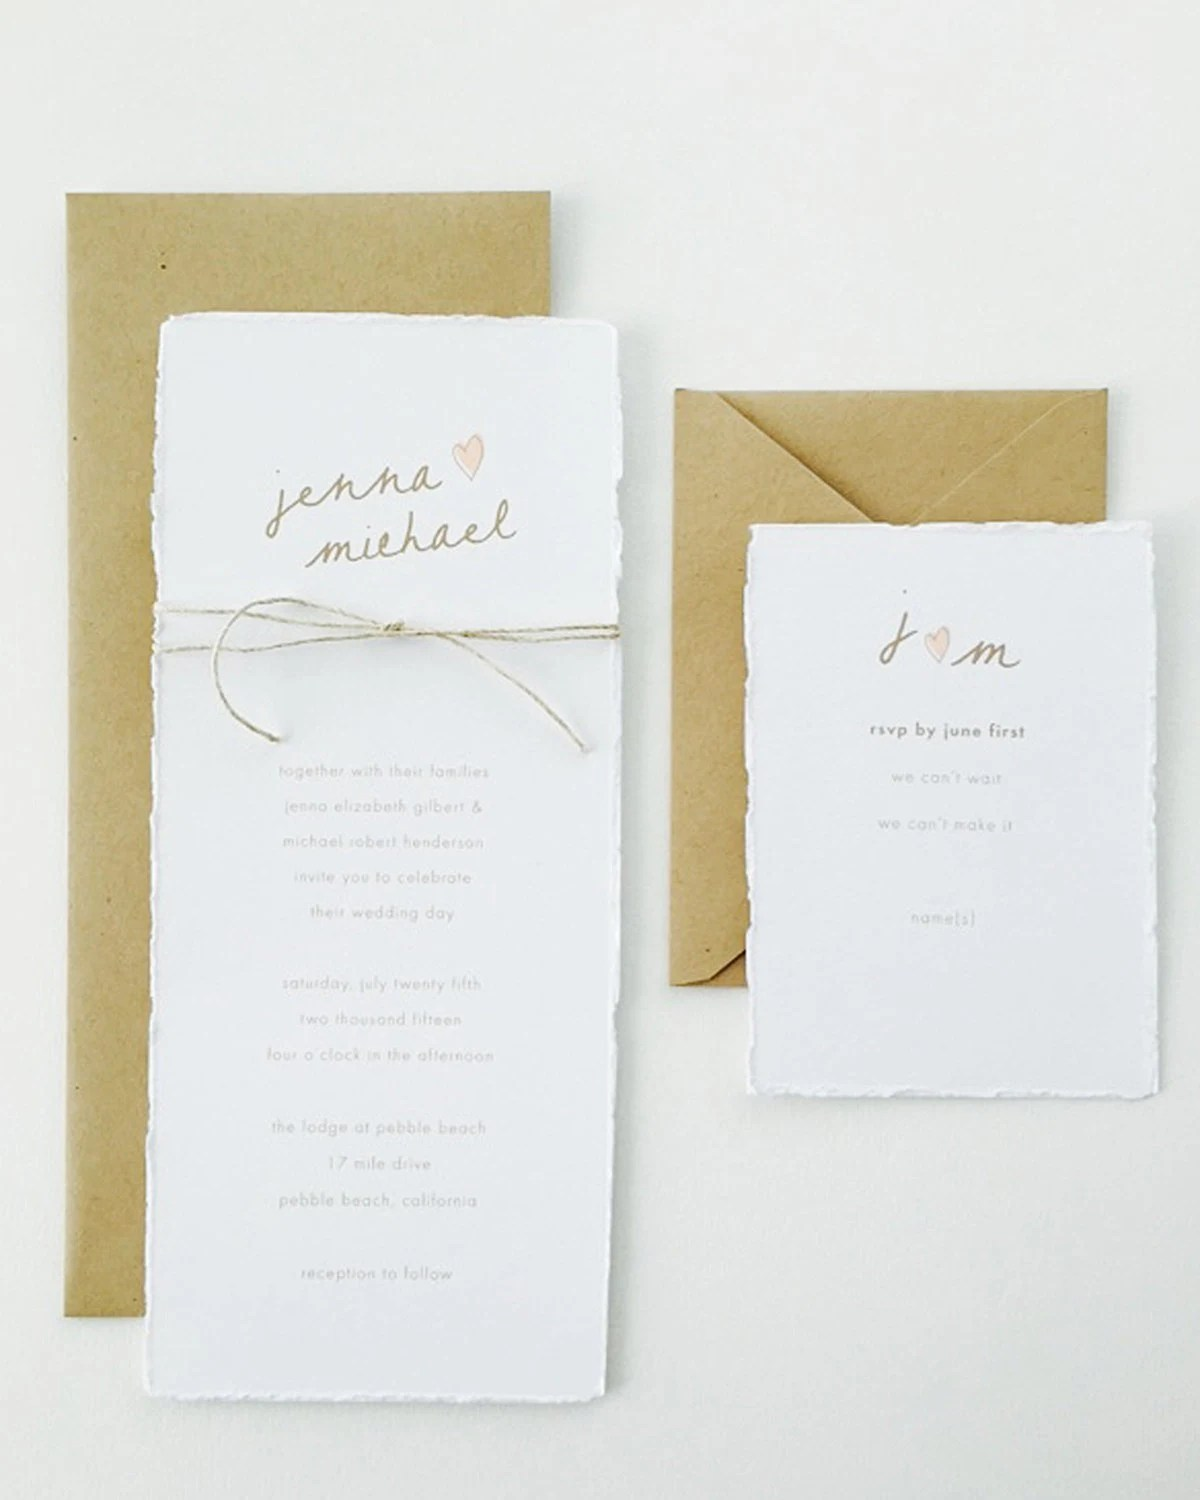 Gallery Minimalist Wedding Invitations: Jenna Wedding Invitation / Kraft Wedding Invitation